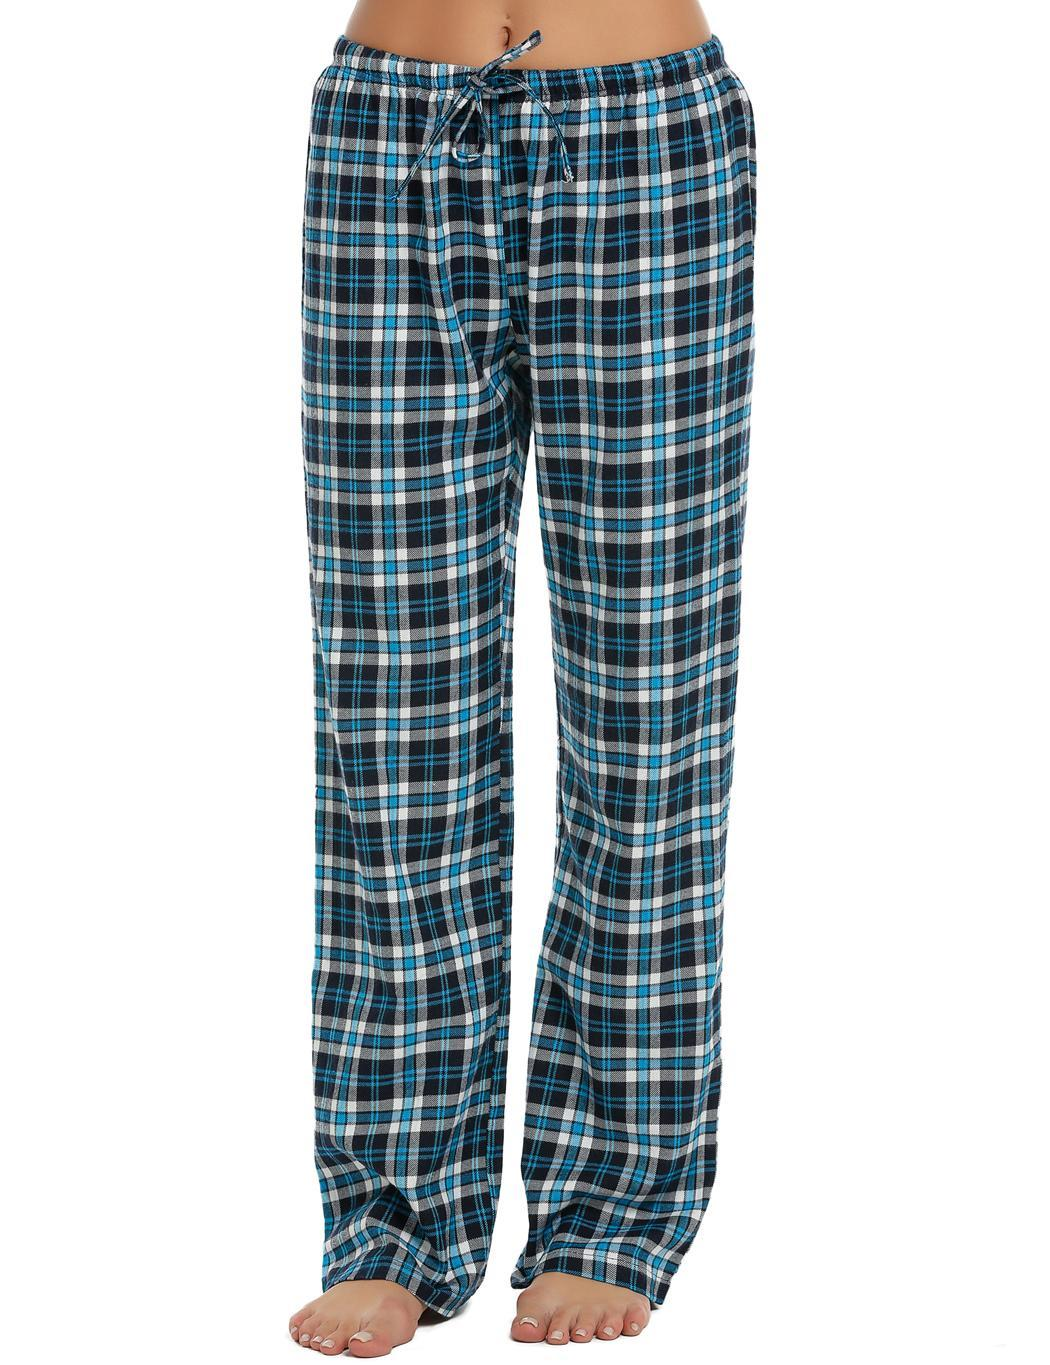 0f130ef510 Details about Women Elastic Waist Plaid Long Pajama Bottom Lounge Pants  Sleepwear